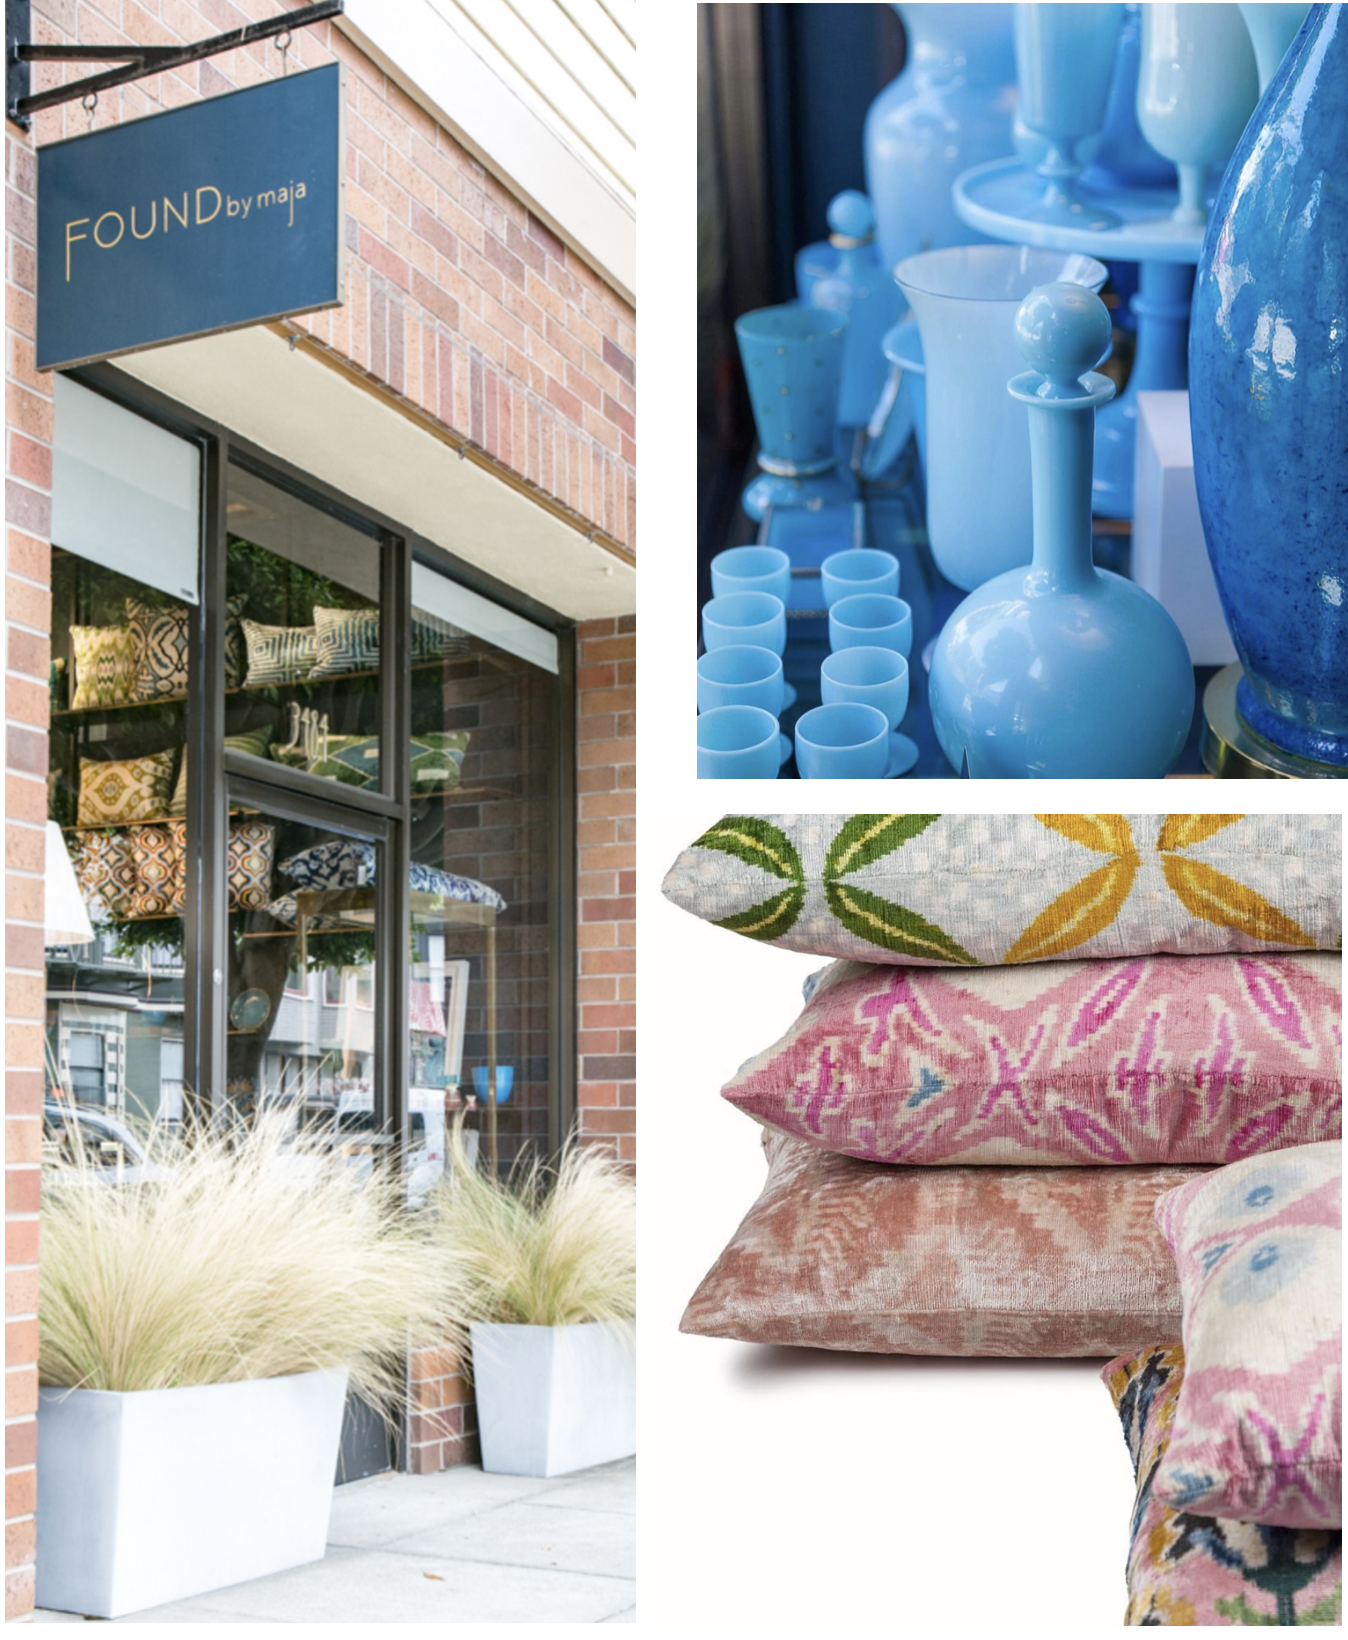 Found by Maja - A passionate treasure hunter, Maja travels the globe to gather and share special textiles, rugs, furnishings, lighting and decorative home accessories. The result is a soulful and eclectic mix of revitalization-worthy vintage finds and special pieces that call out for the resurgence of cocktail hour.Must Buy: imported one-of-a-kind textiles, vintage barware, treasures from far away destinationsvisit website